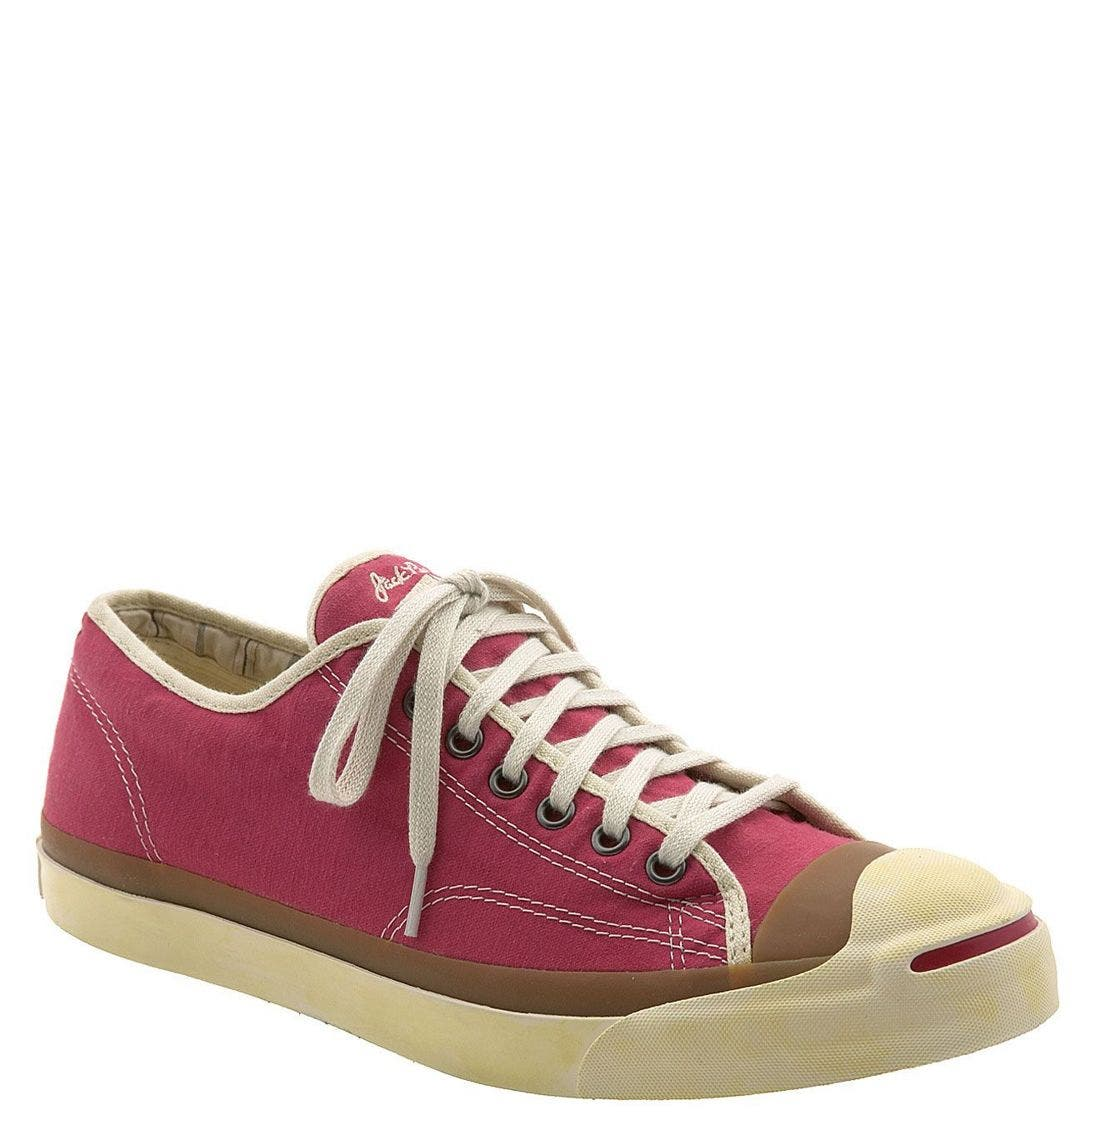 'Jack Purcell' Sneaker, Main, color, RED